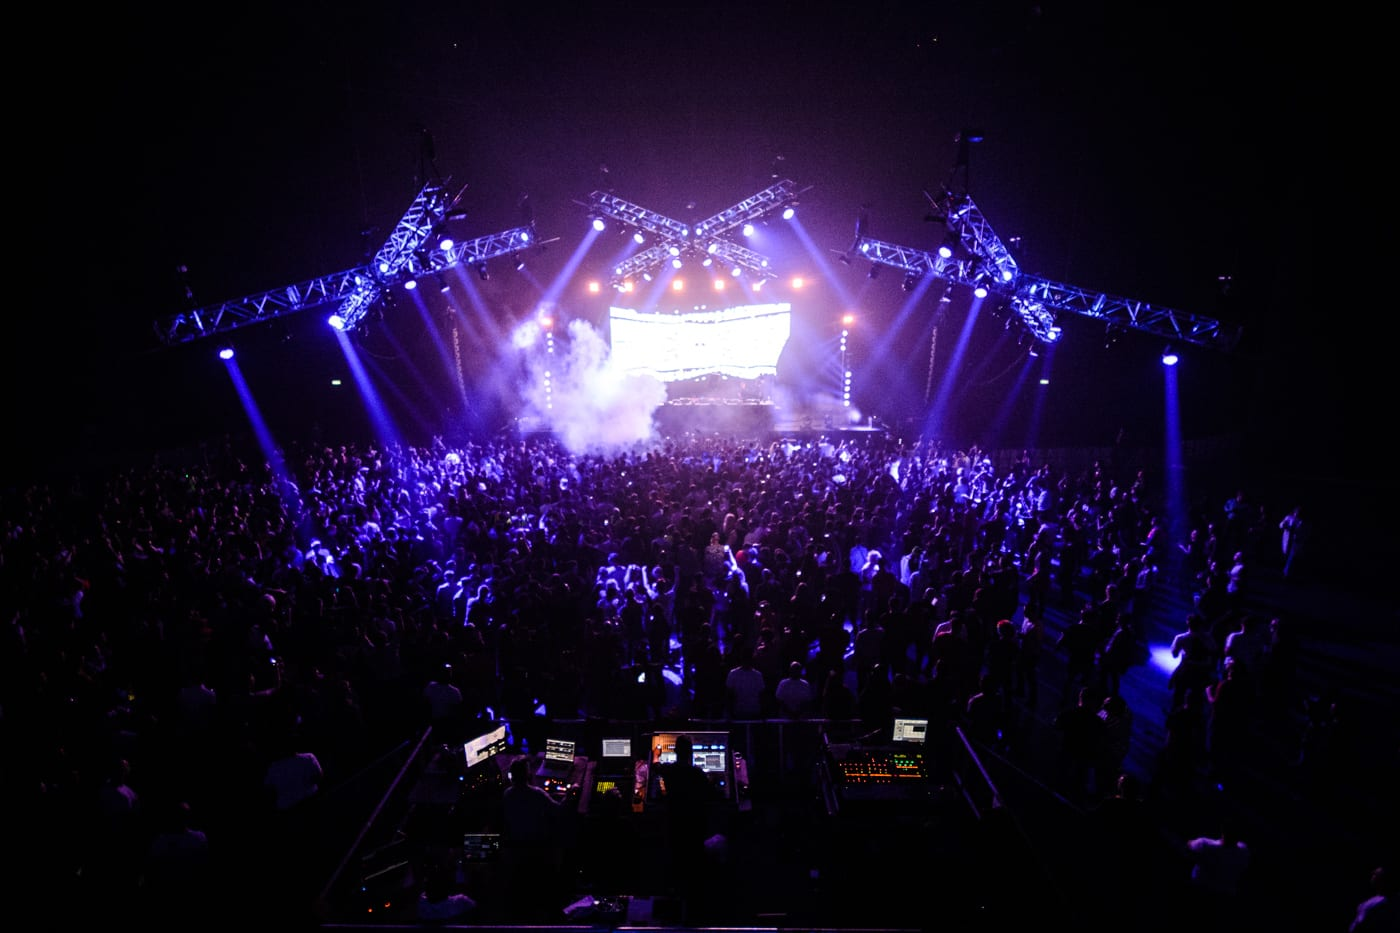 winterparty-at-3arena-dublin-30-10-2016-by-sean-smyth-28-of-53